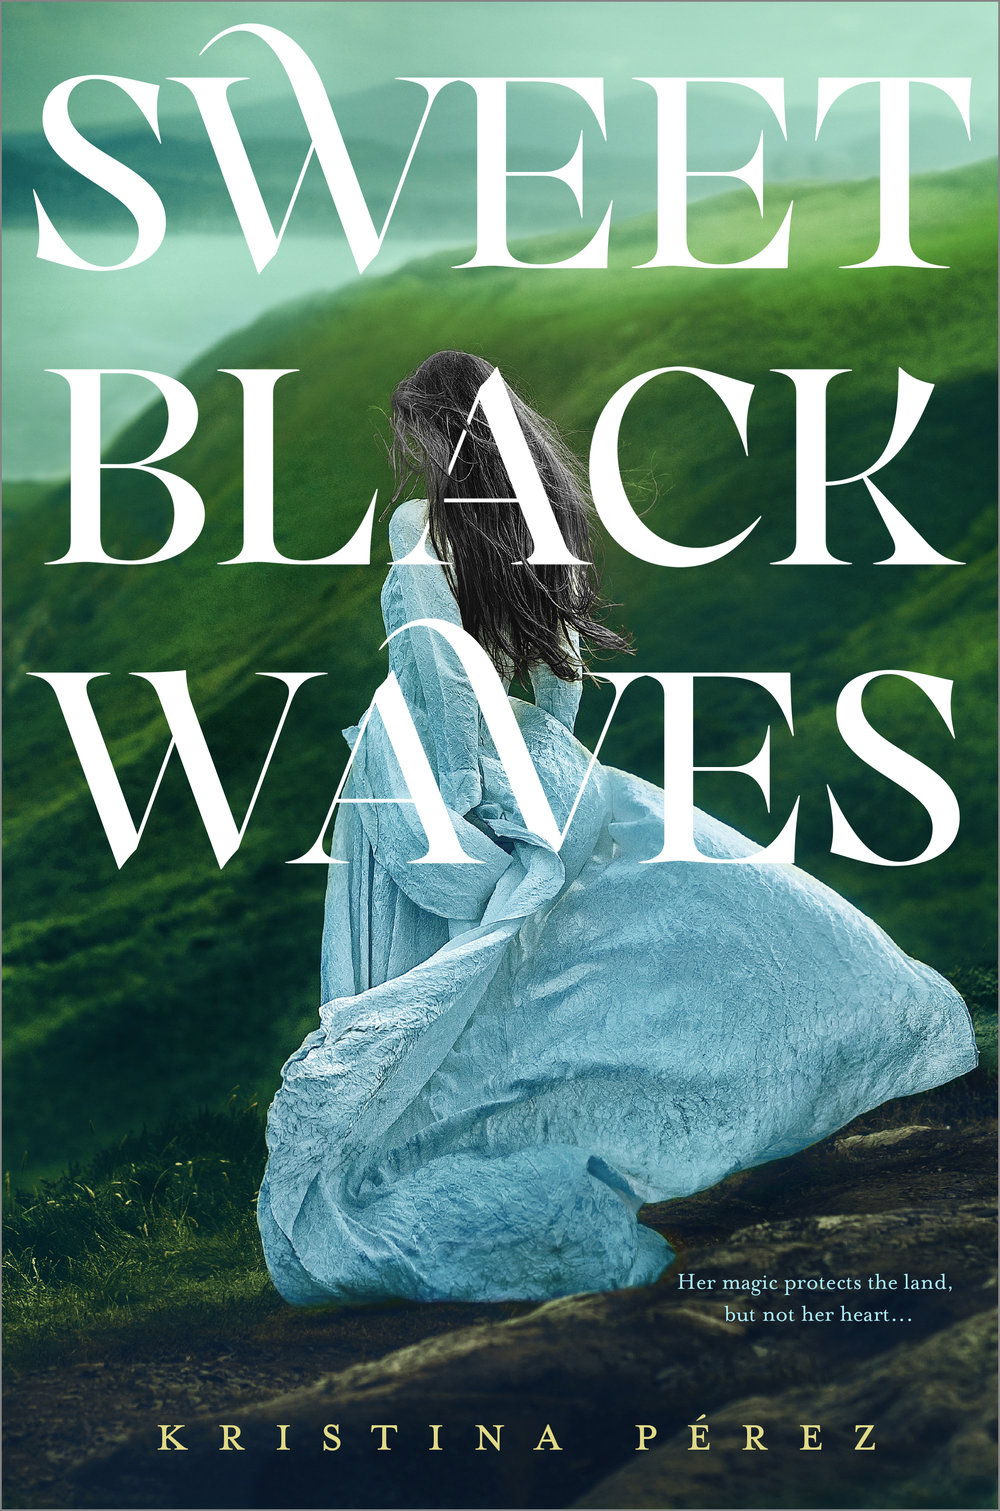 Happy book birthday to SWEET BLACK WAVES by Kristina Pérez! - Two proud kingdoms stand on opposite shores, with only a bloody history between them.As best friend and lady-in-waiting to the princess, Branwen is guided by two principles: devotion to her homeland and hatred for the raiders who killed her parents. When she unknowingly saves the life of her enemy, he awakens her ancient healing magic and opens her heart. Branwen begins to dream of peace, but the princess she serves is not so easily convinced. Fighting for what's right, even as her powers grow beyond her control, will set Branwen against both her closest confidant and the only man she's ever loved.Inspired by the star-crossed tale of Tristan and Eseult, this is the story of the legend's true heroine: Branwen. For fans of Gracelingand The Mists of Avalon, this is the first book of a lush fantasy trilogy about warring countries, family secrets, and forbidden romance.